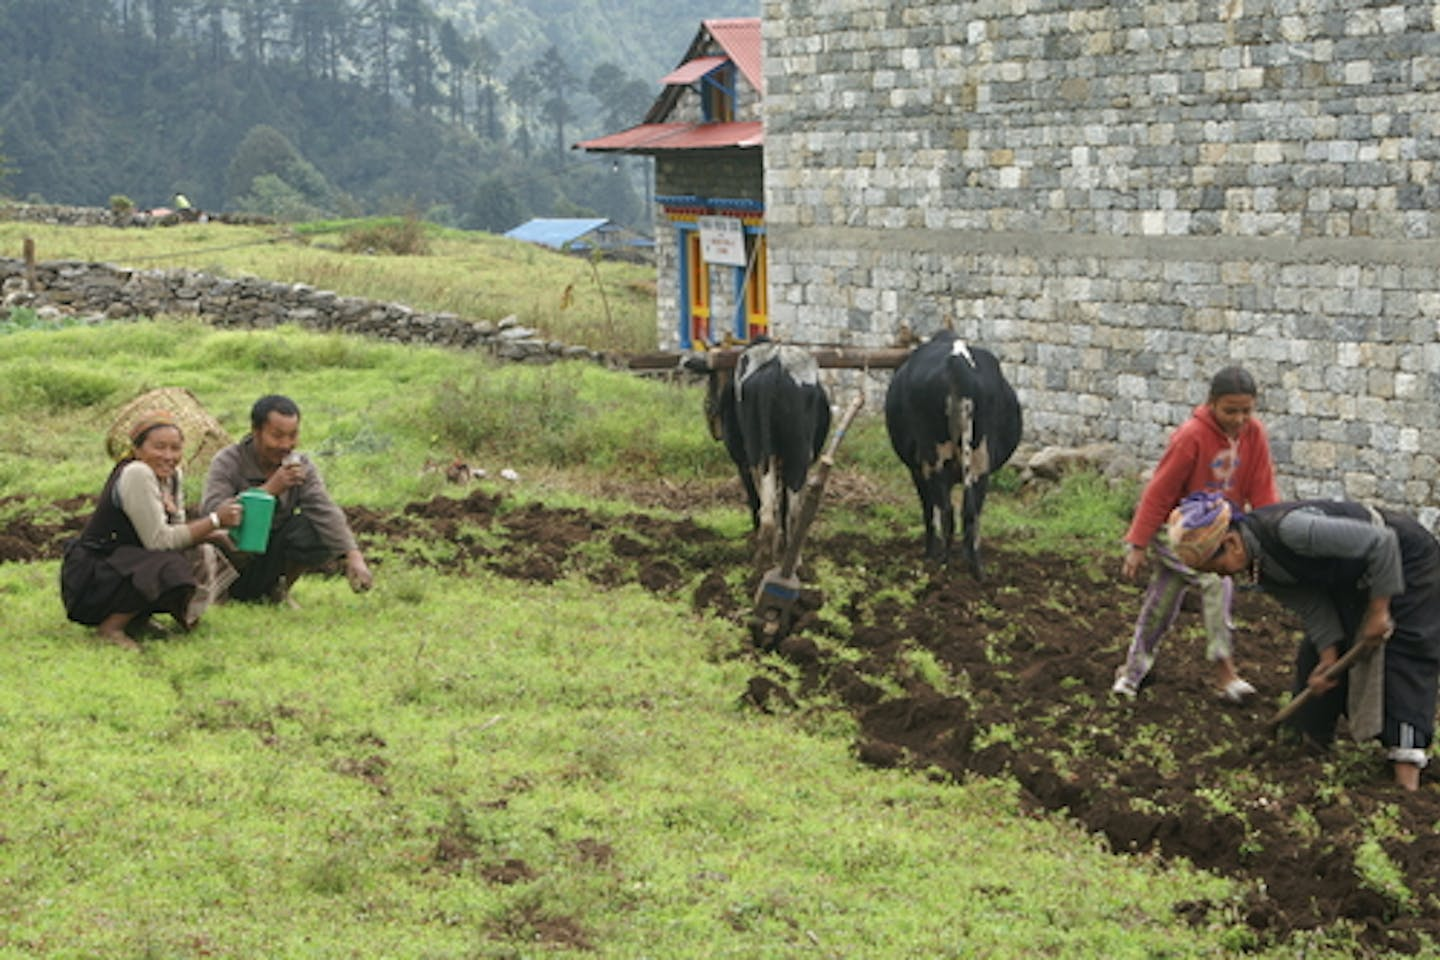 Family farming potatoes in Nepal